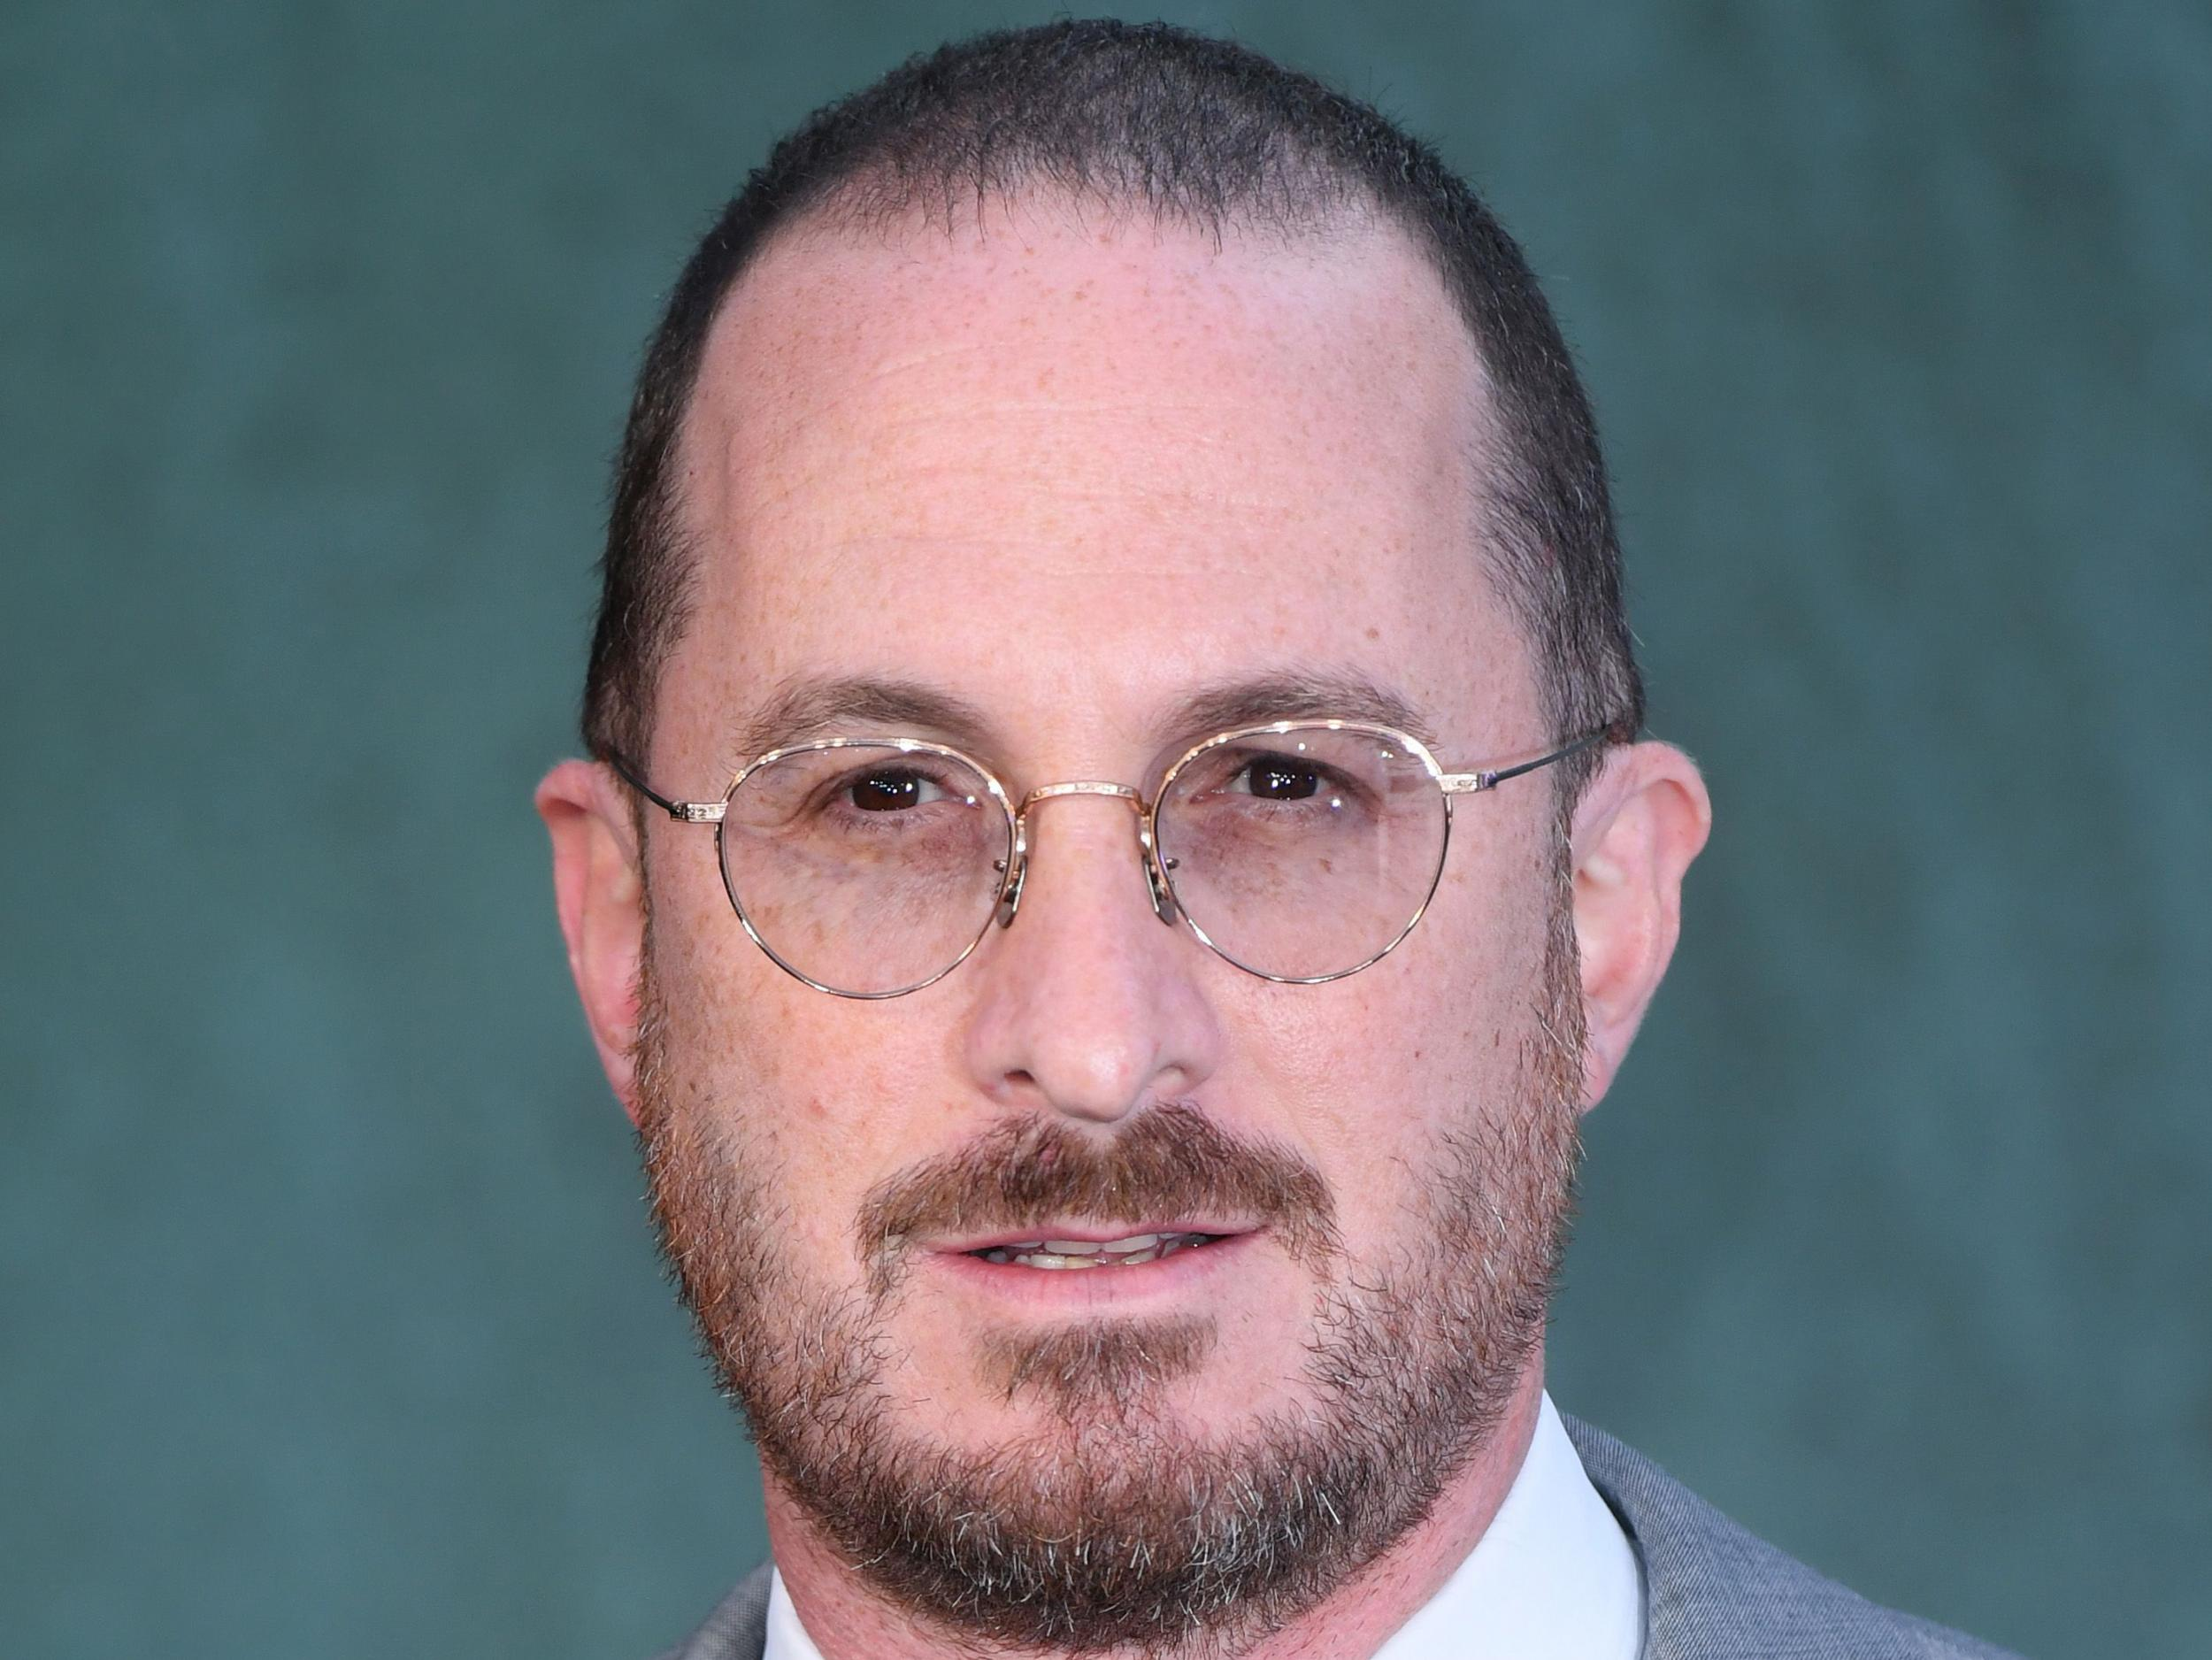 mother!: has darren aronofsky gone too far? | the independent